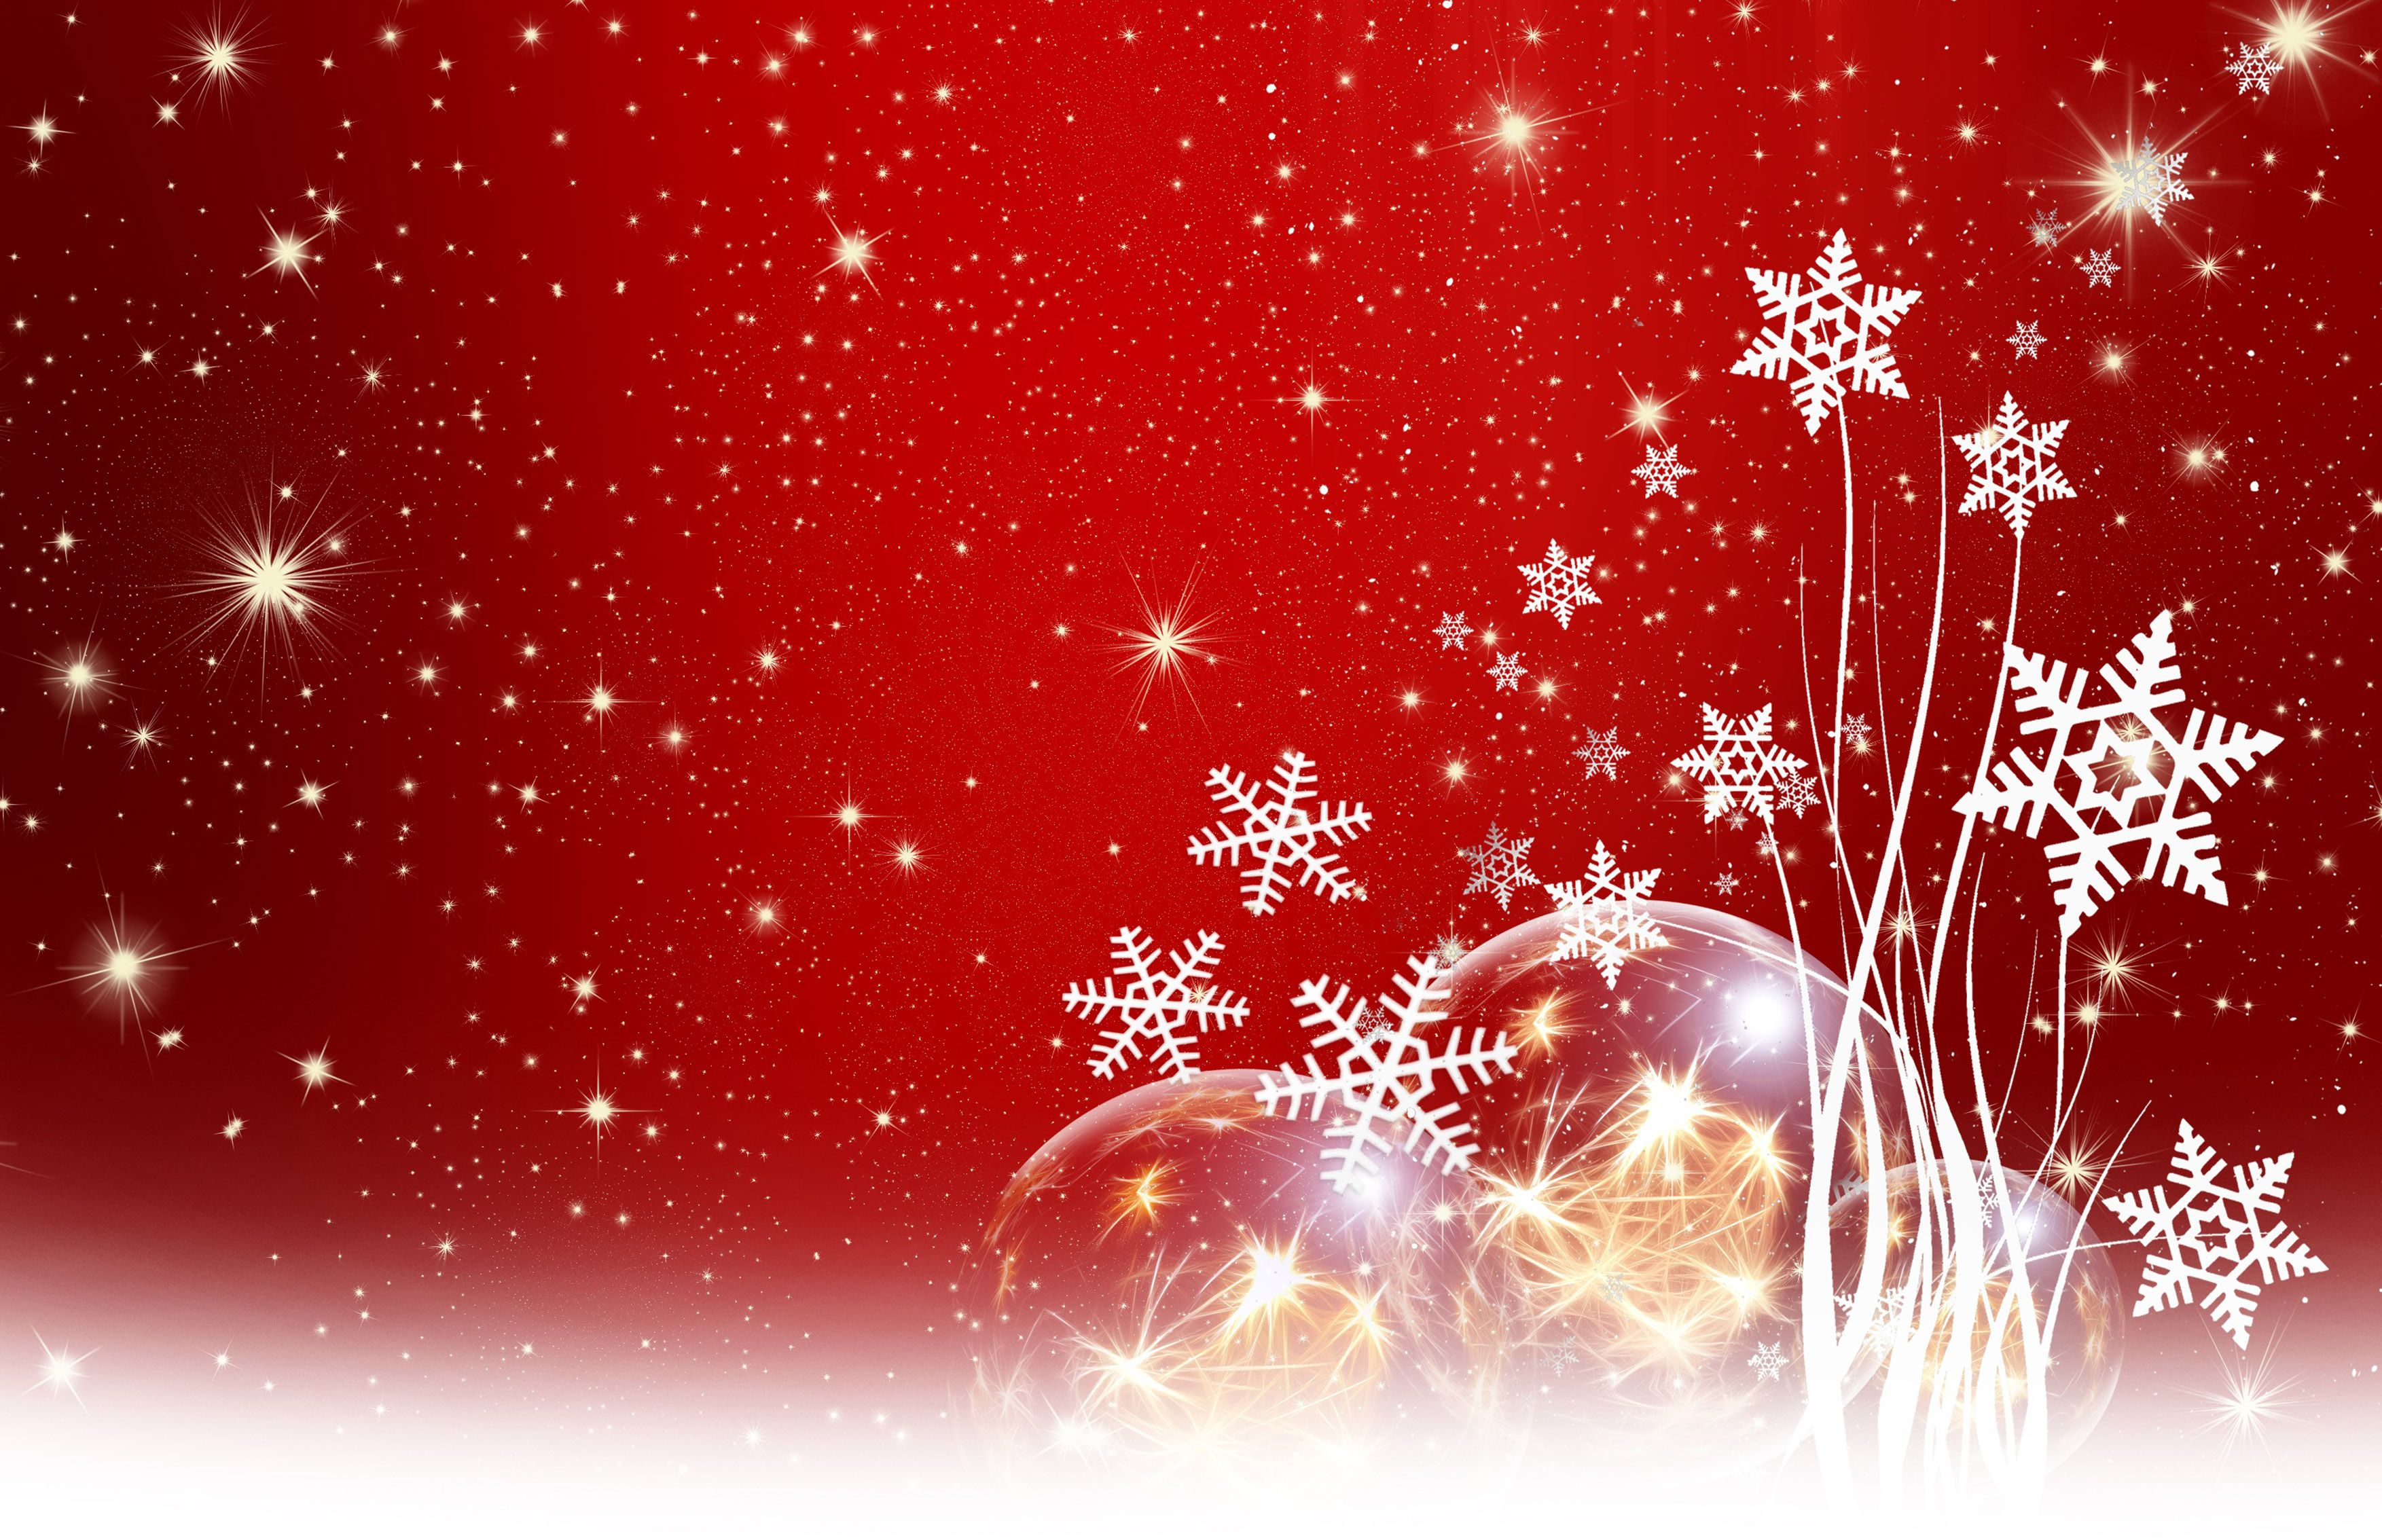 red free christmas wallpaper image backgrounds and